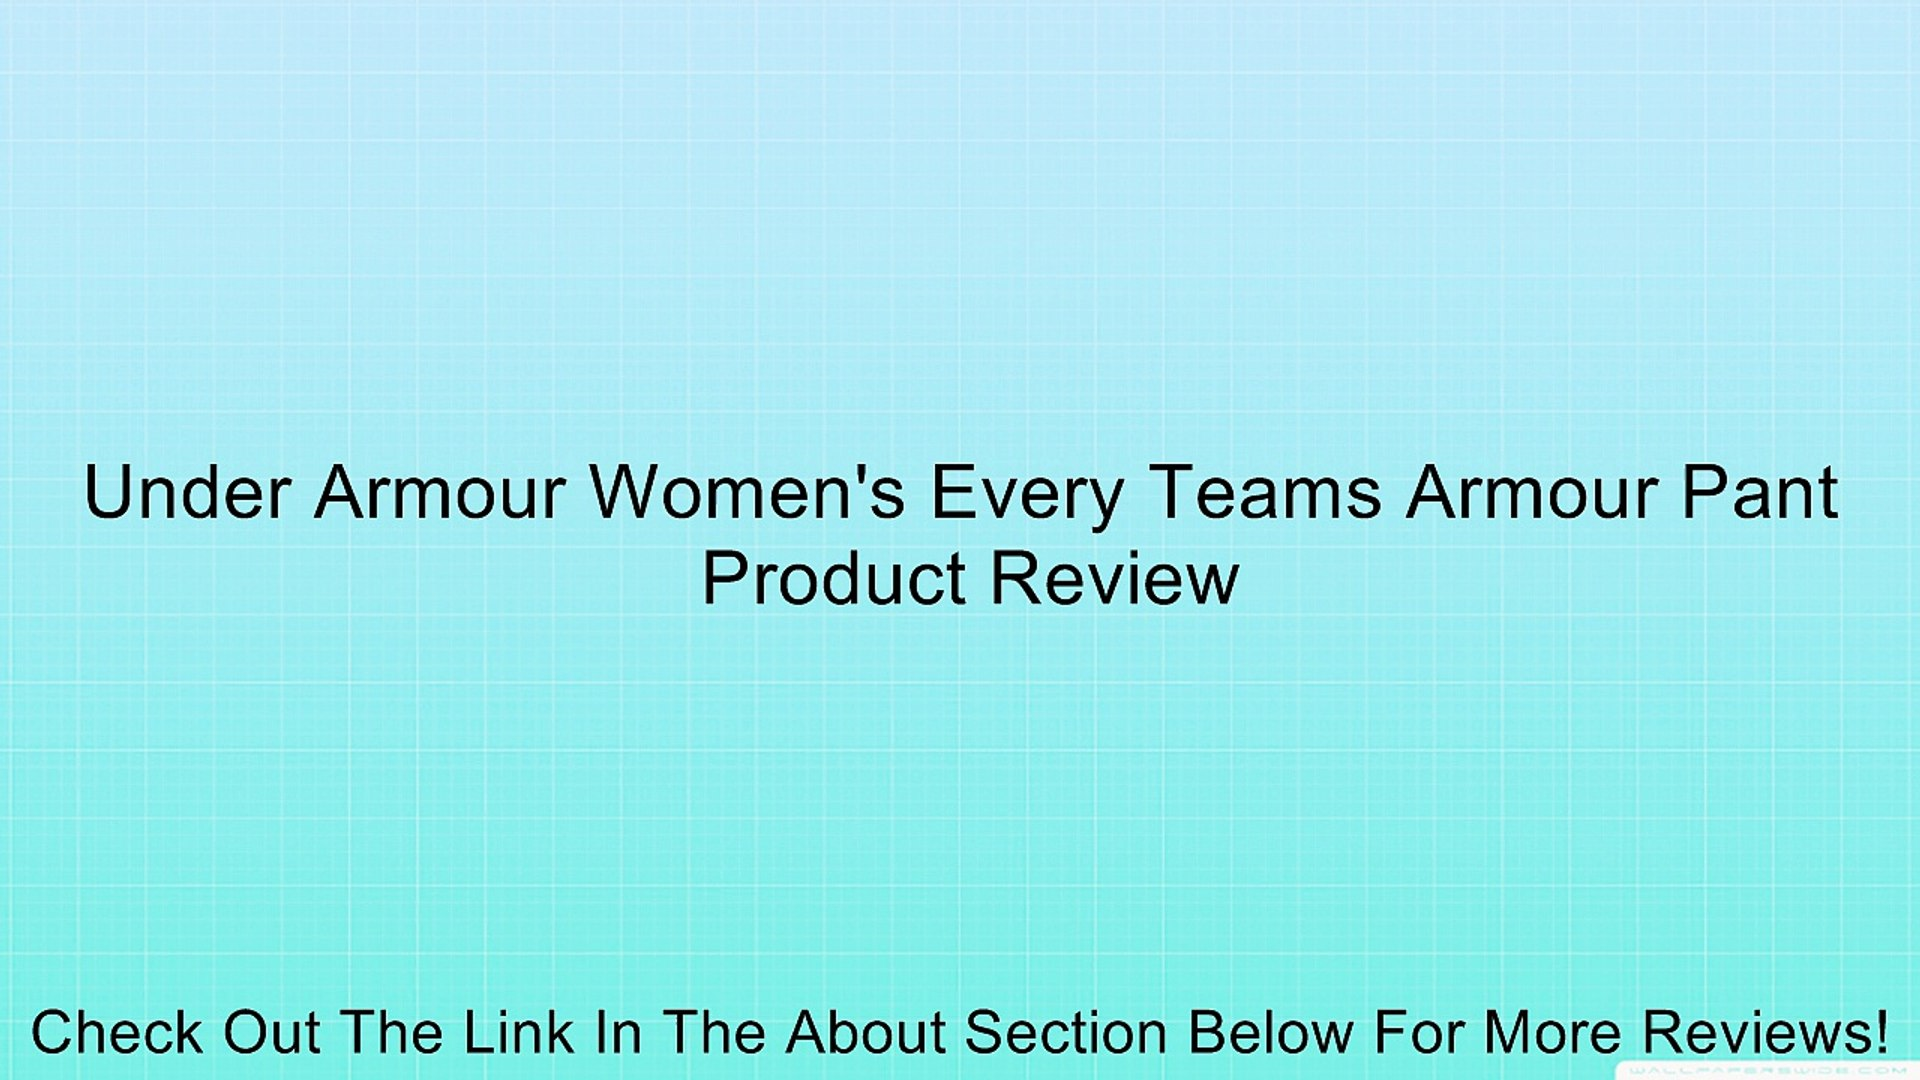 Under Armour Women's Every Teams Armour Pant Review